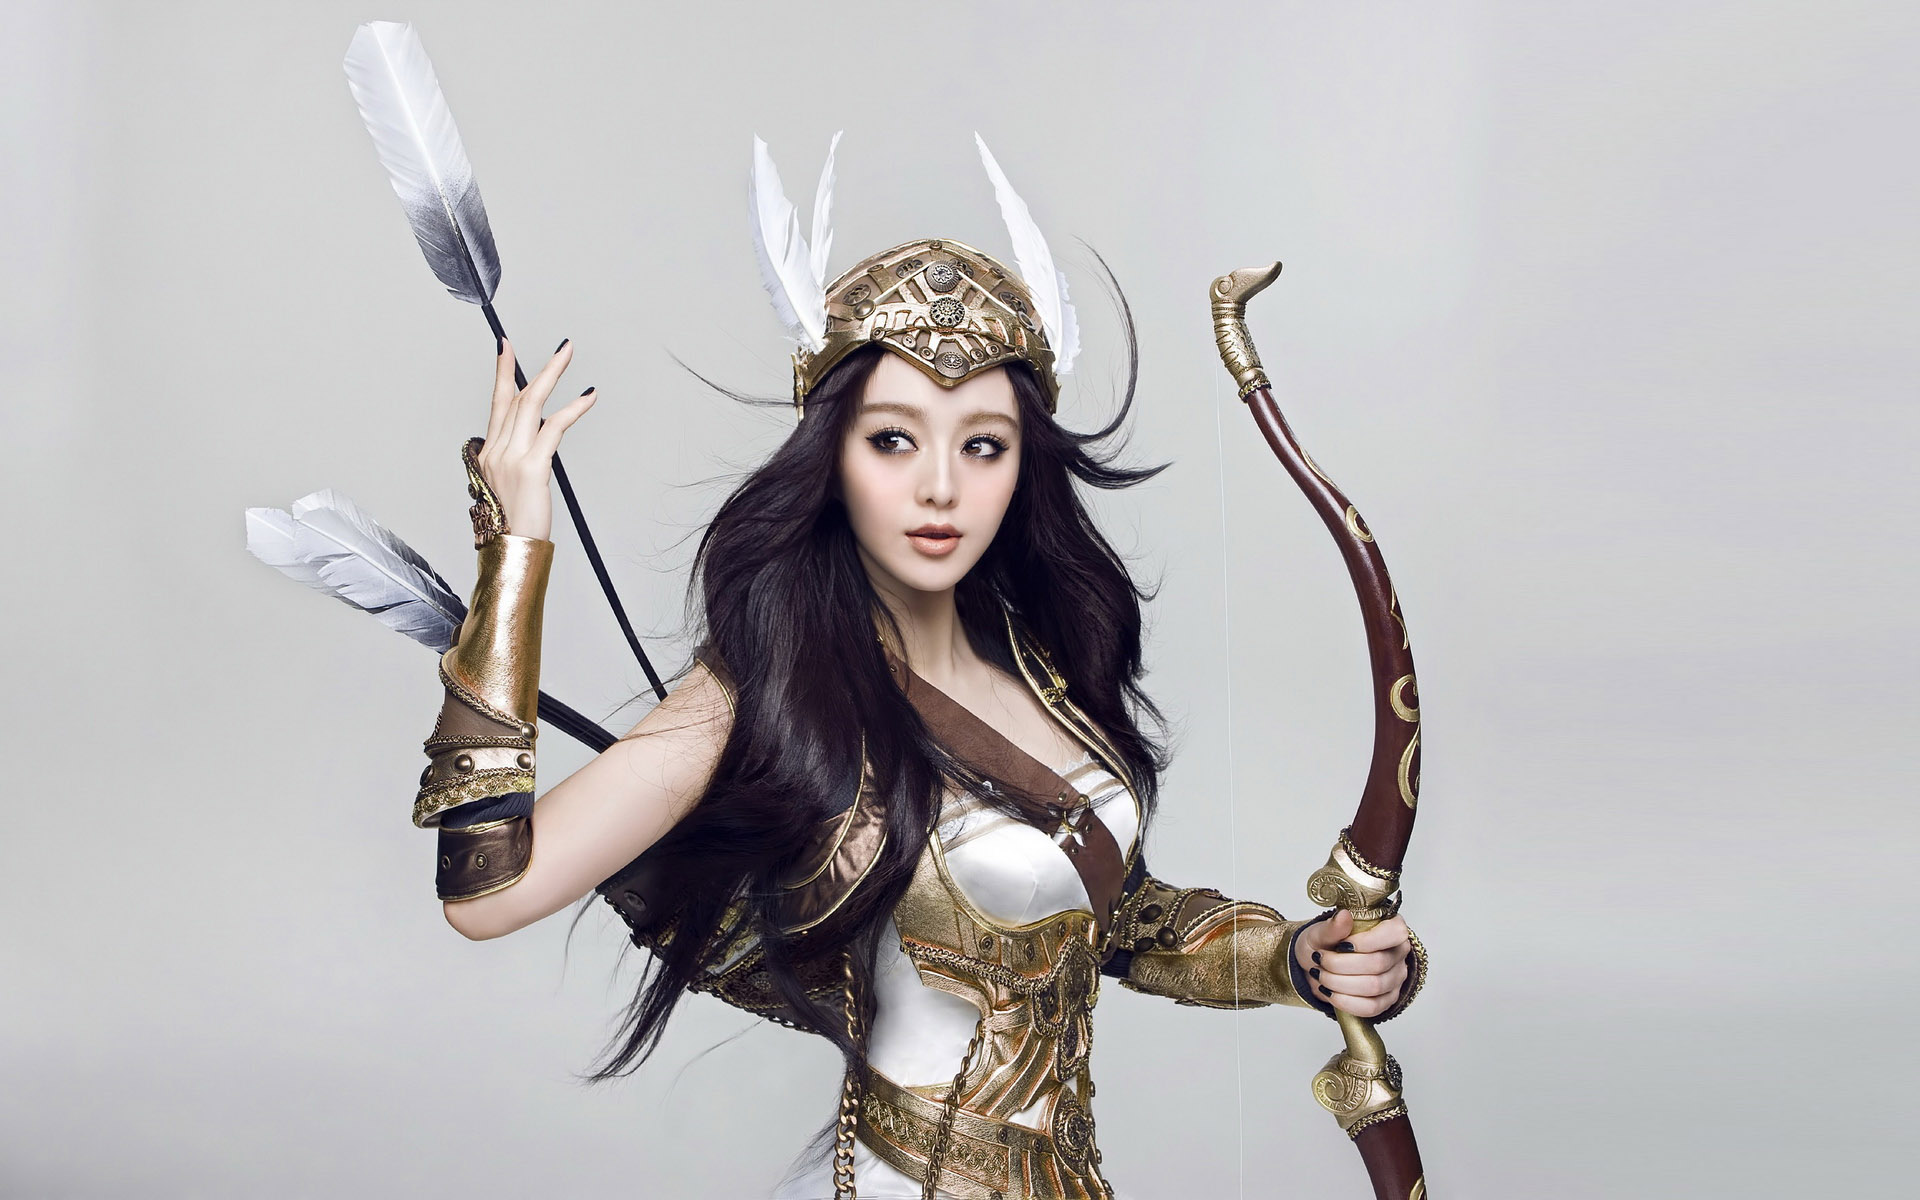 antlers asian personals Meet antlers singles online & chat in the forums dhu is a 100% free dating site to find personals & casual encounters in antlers.